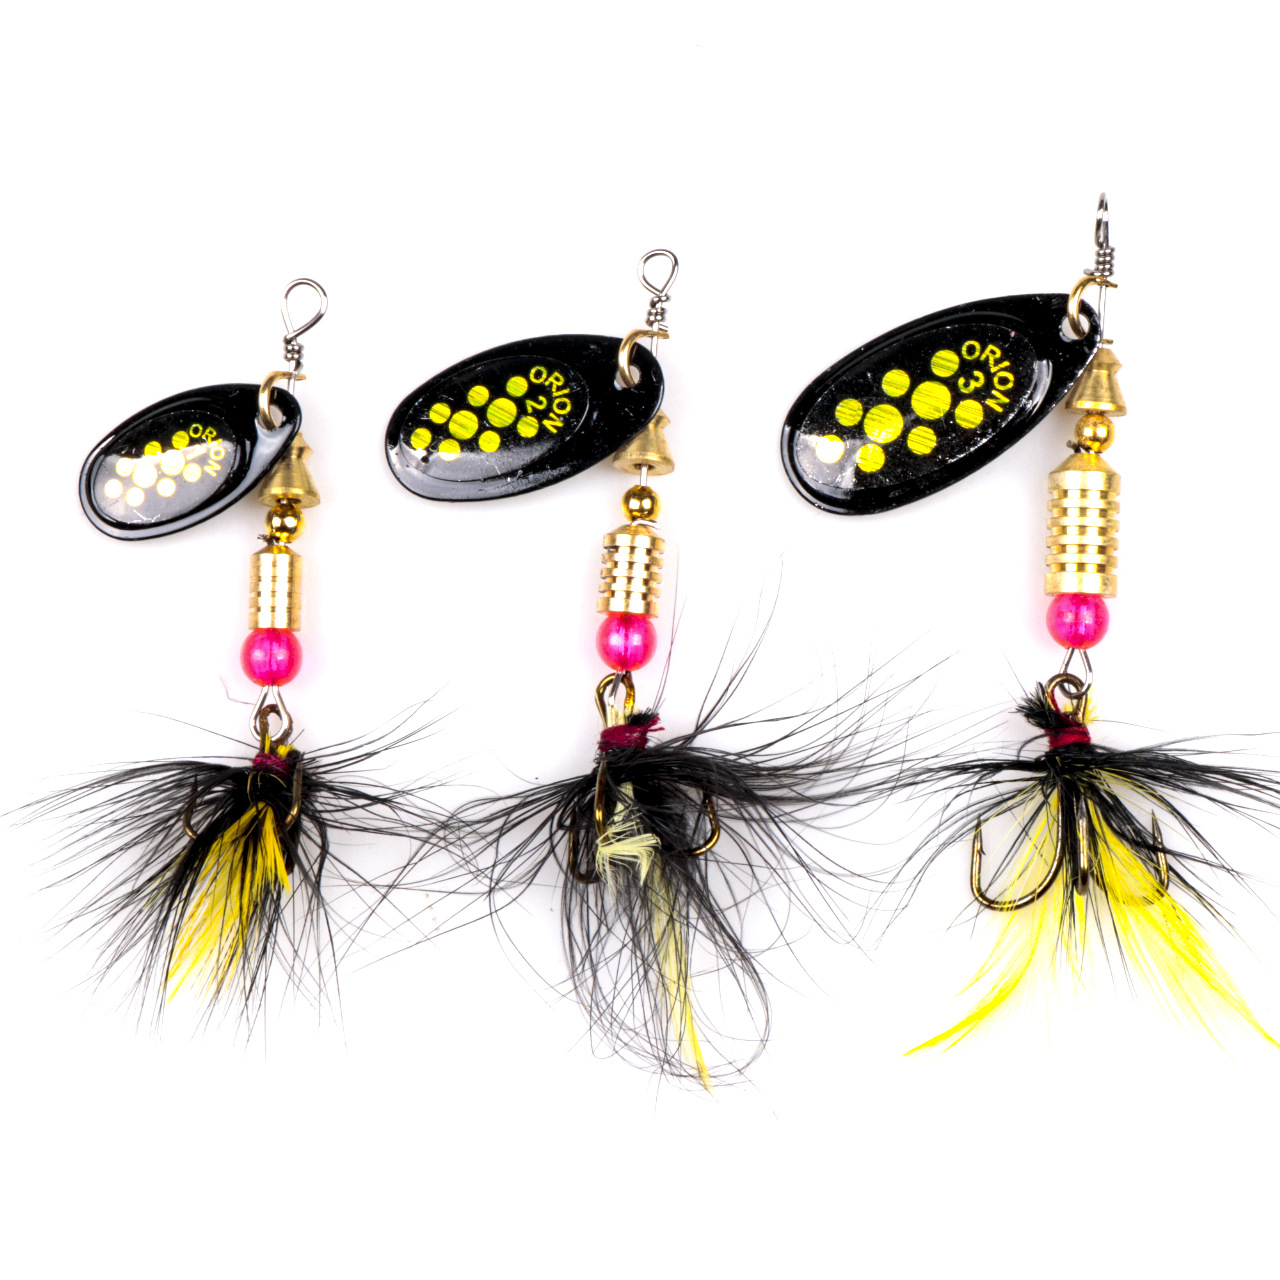 1pcs Spinner Spoon Fishing Lure metal Sequins 3.5g 4.5g 7.2g artificial alloy sub-rotating with treble hook Crankbait baits